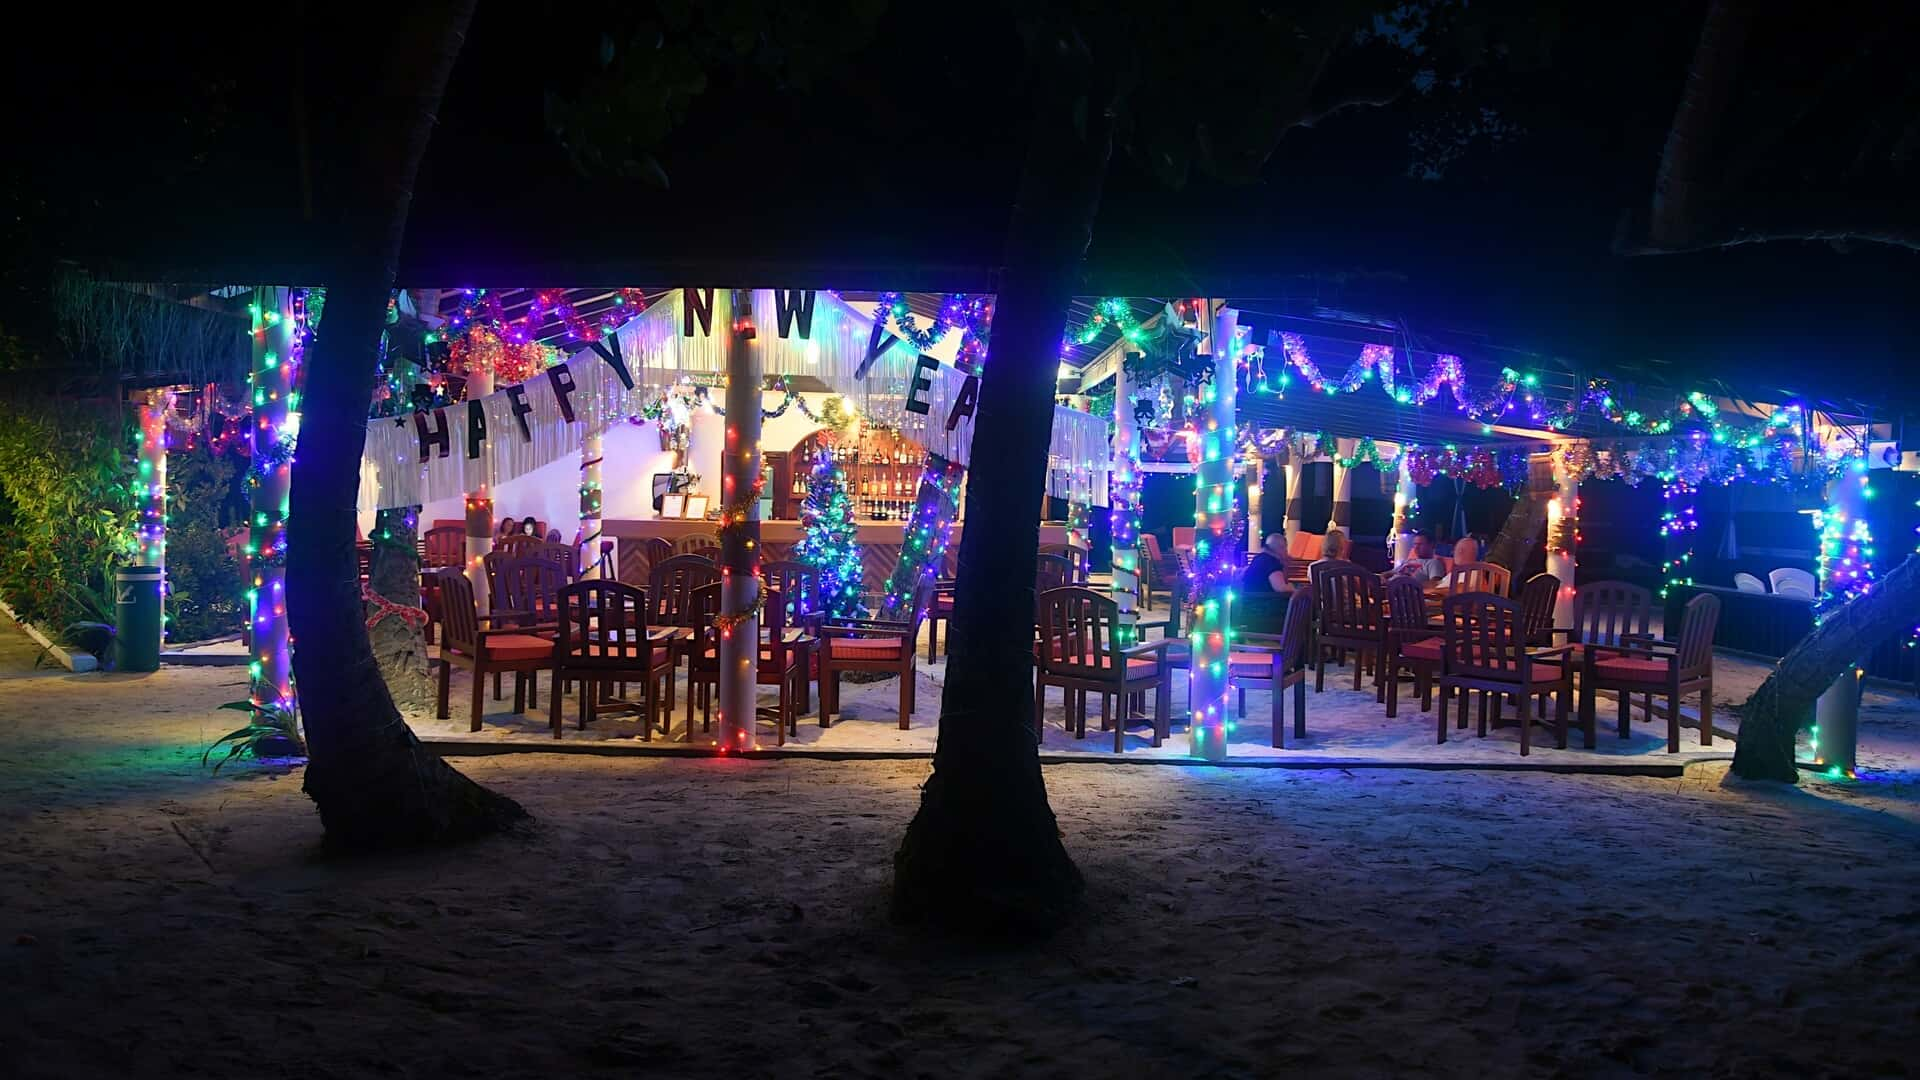 New Year's Eve in the Maldives